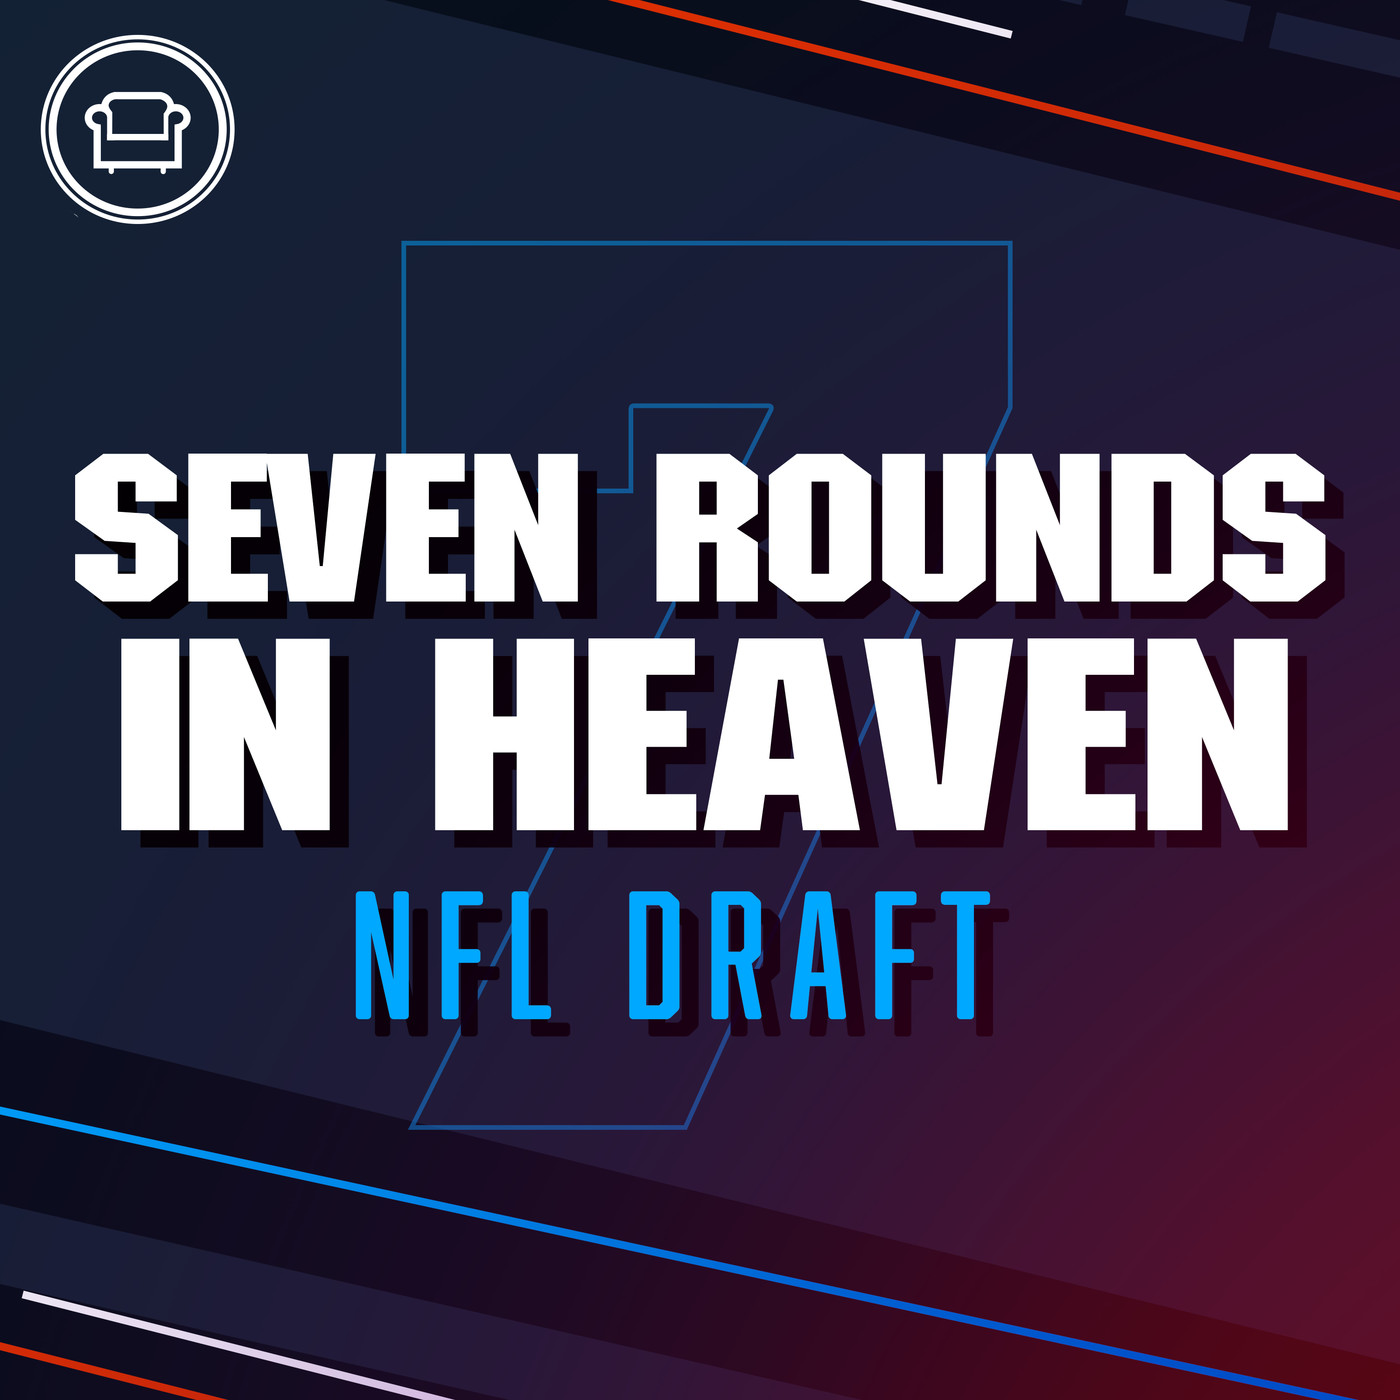 Seven Rounds in Heaven